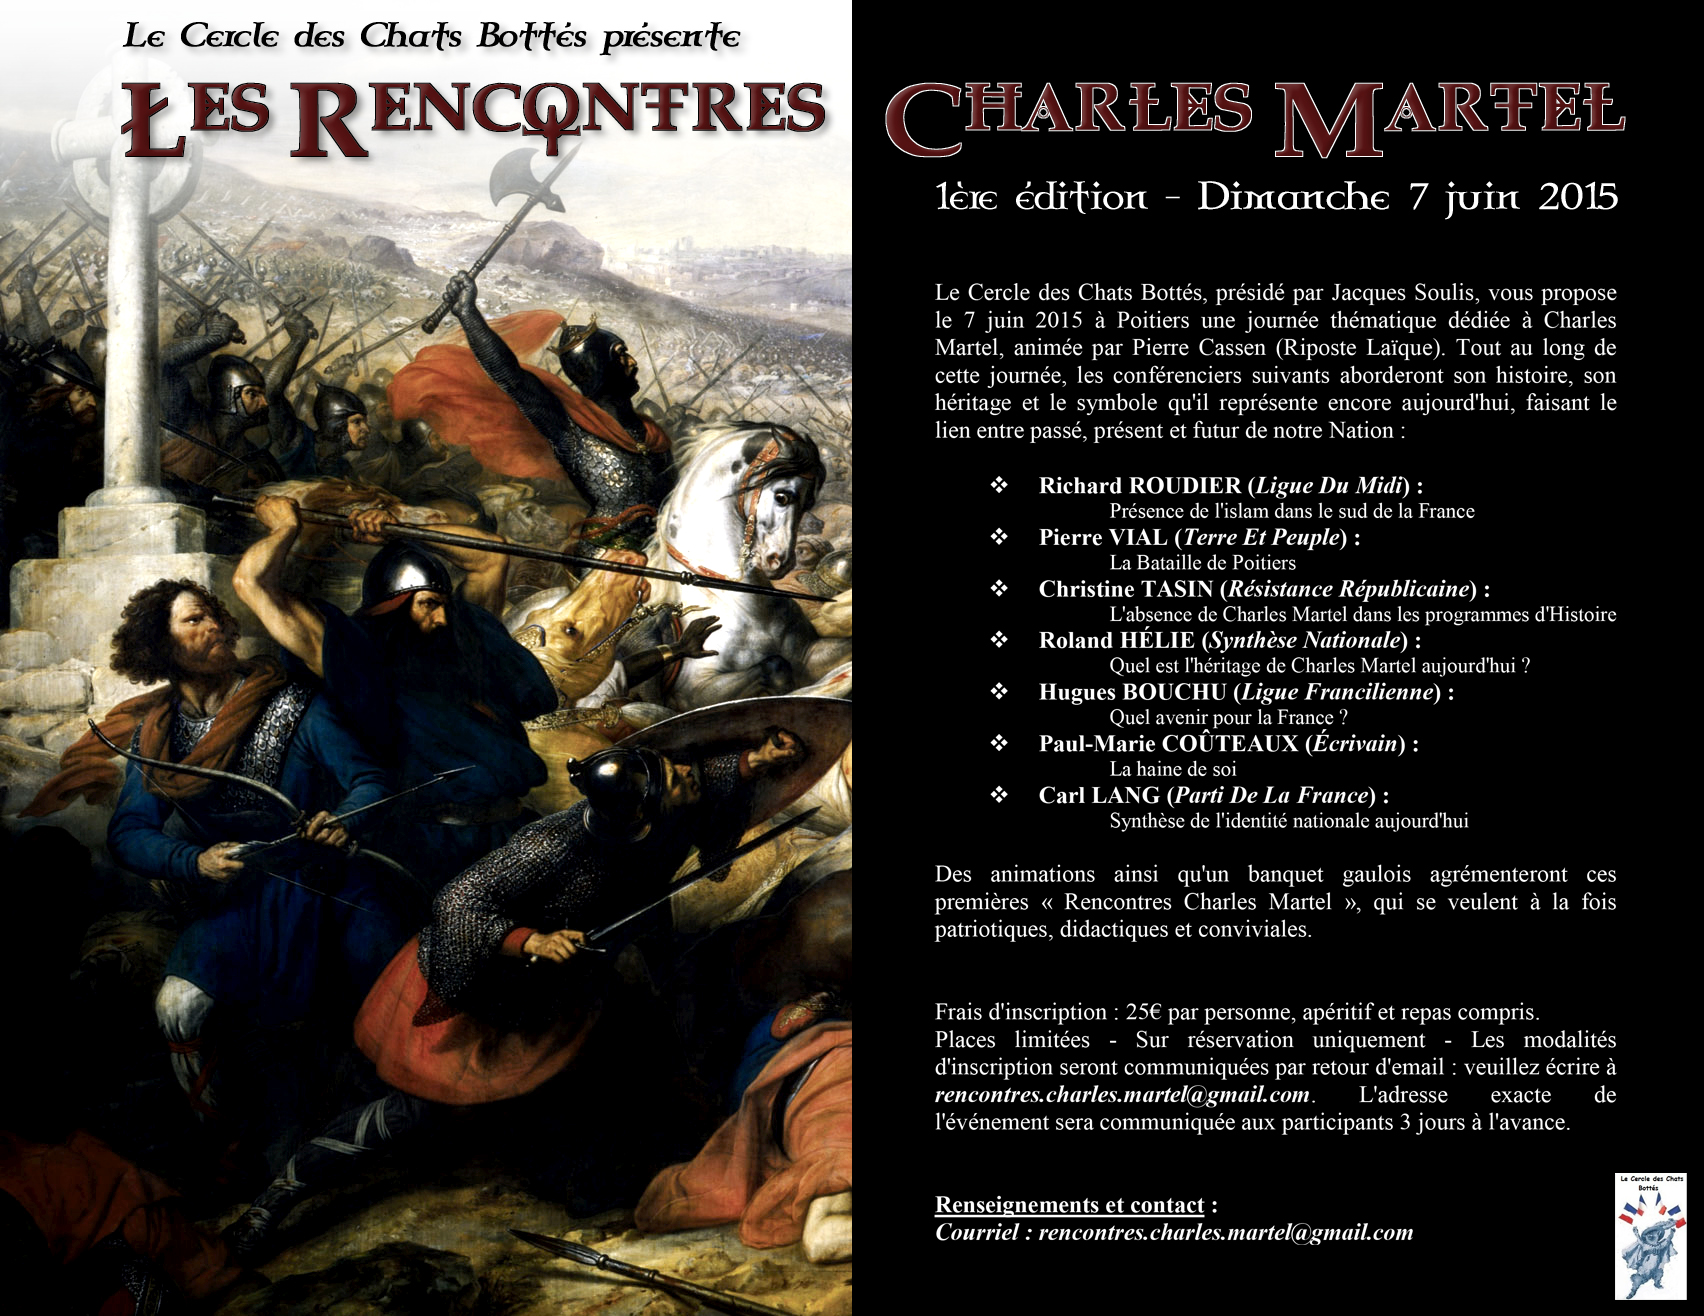 Rencontres Charles Martel pierre vial poitiers